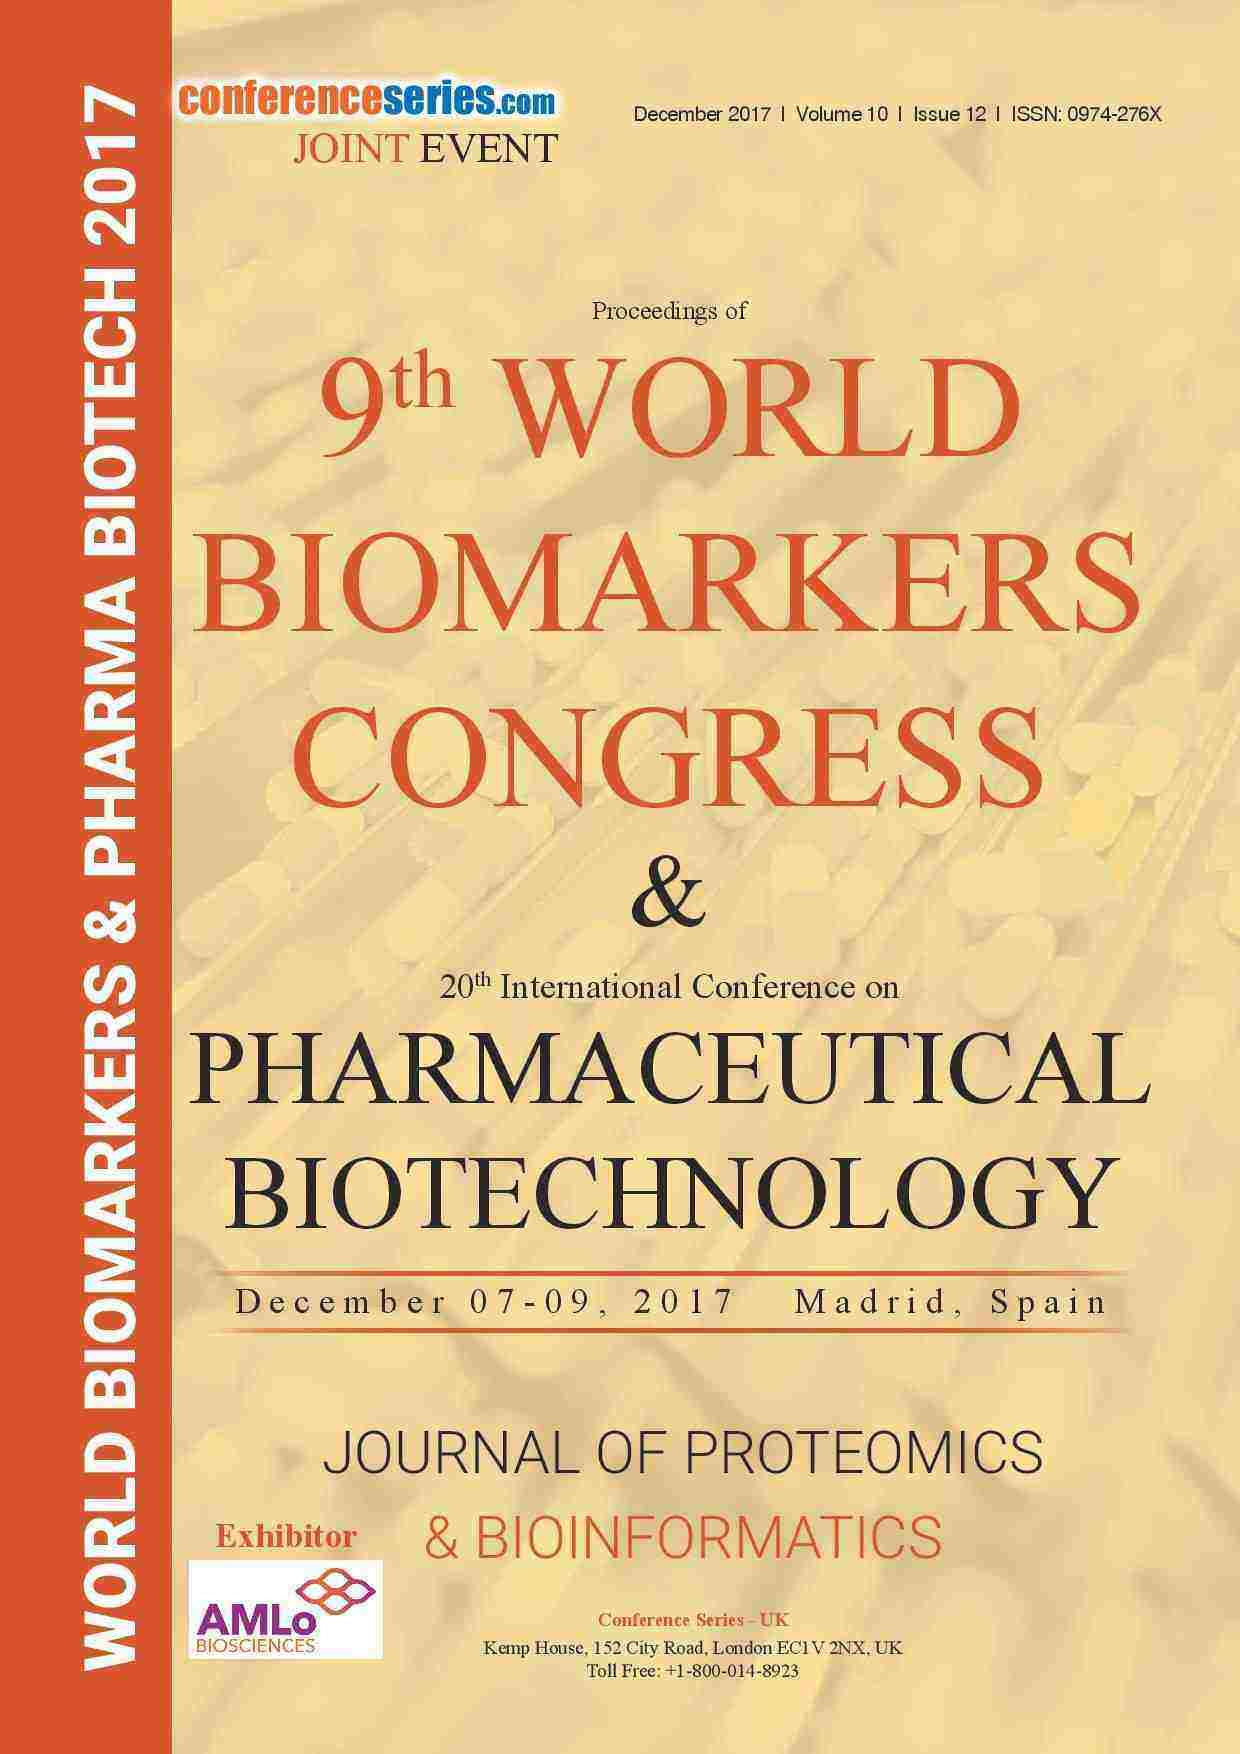 9th World Biomarkers Congress